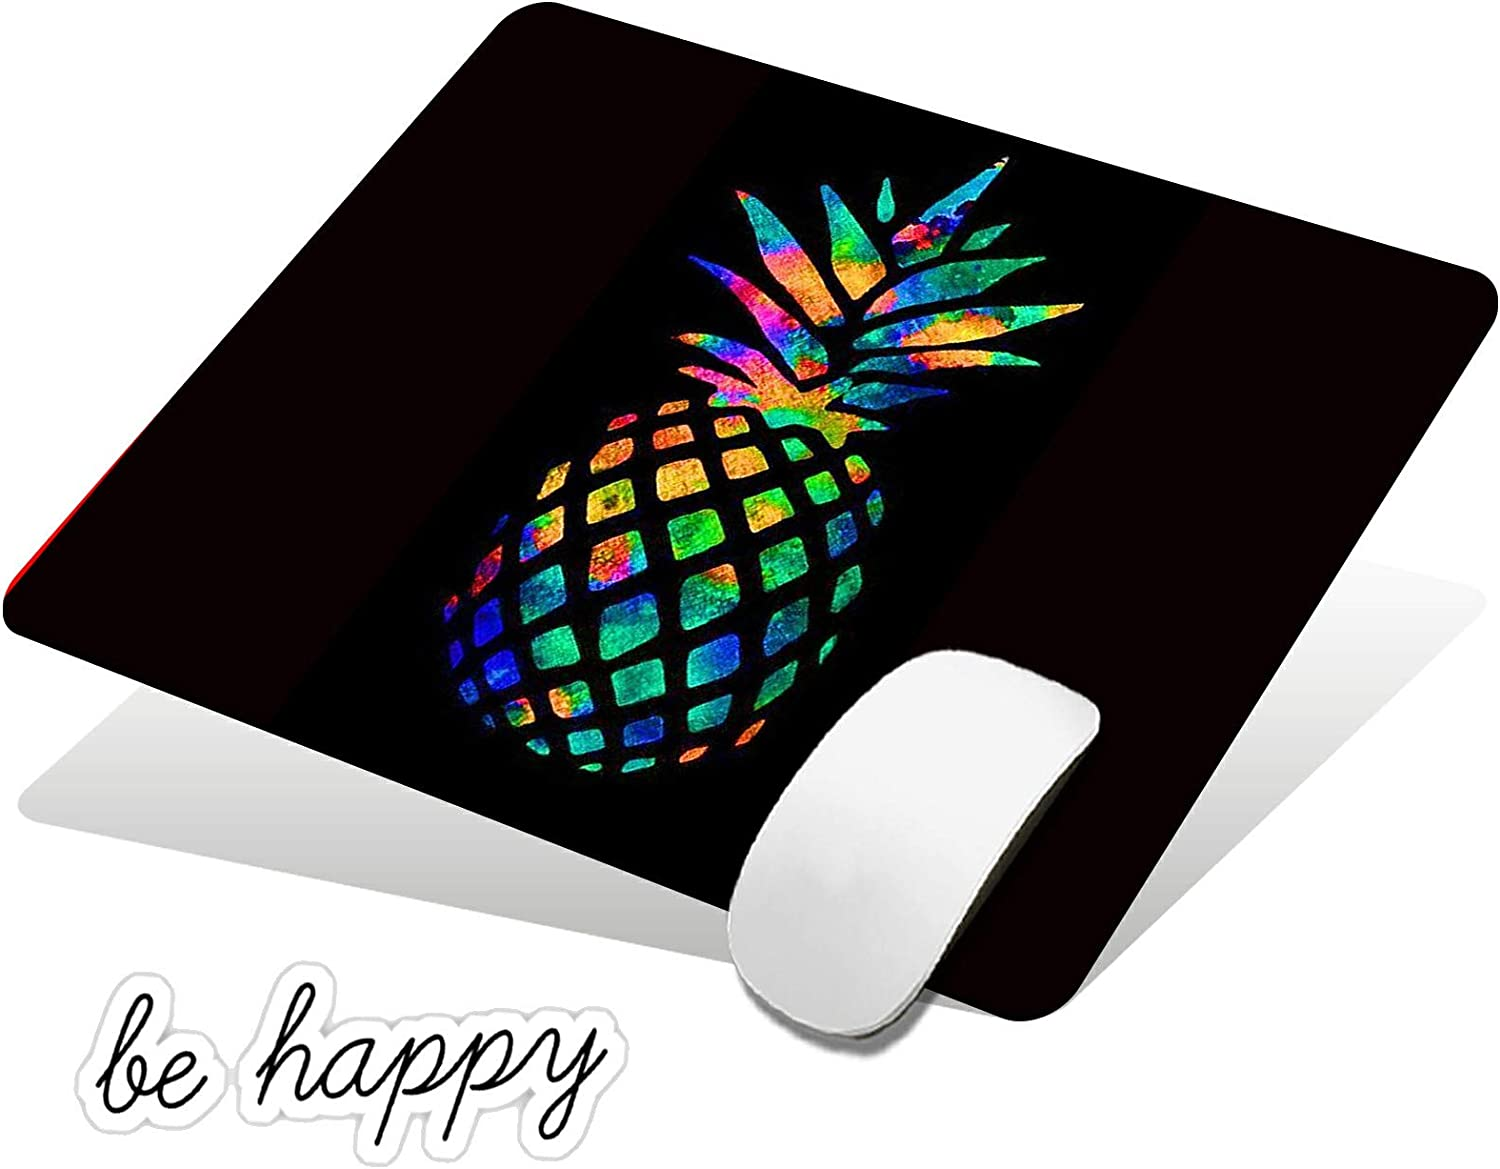 Mouse Pad Black Pineapple Gaming Mousepad Non-Slip Rubber Base Design Mouse Pads for Computers and Laptop,with Be Happy Computer Stickers